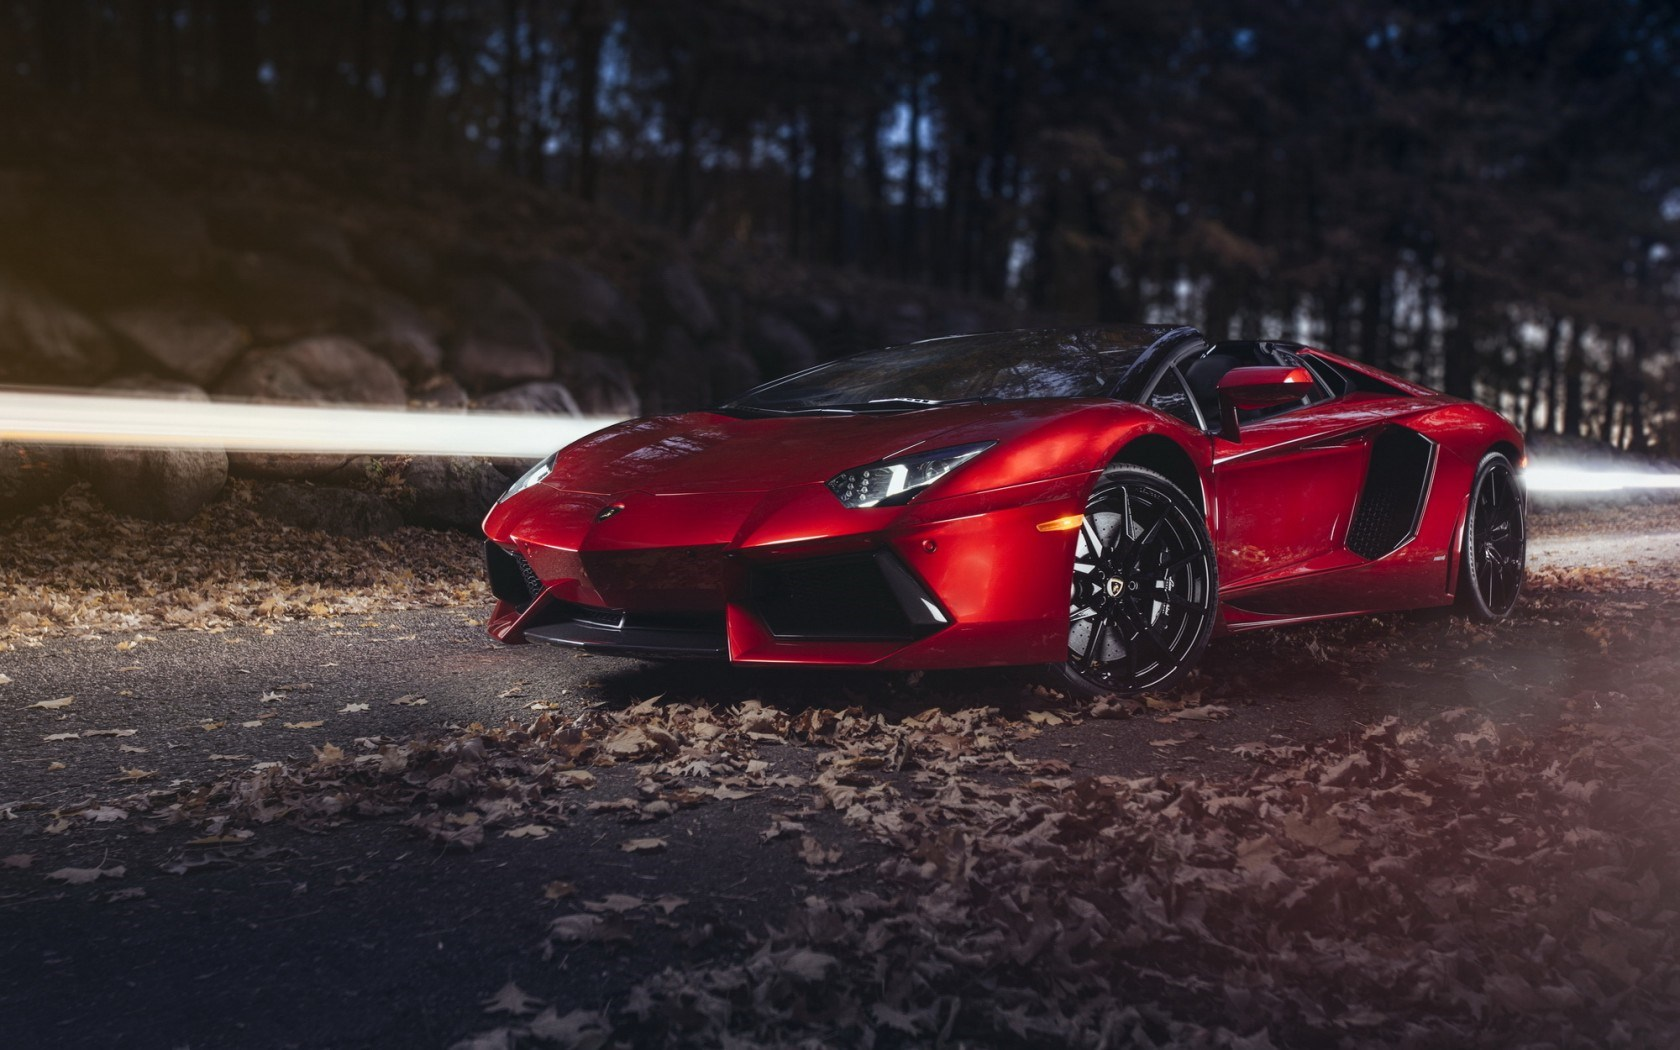 Lamborghini Aventador LP 700-4 Roadster Supercar Road Autumn